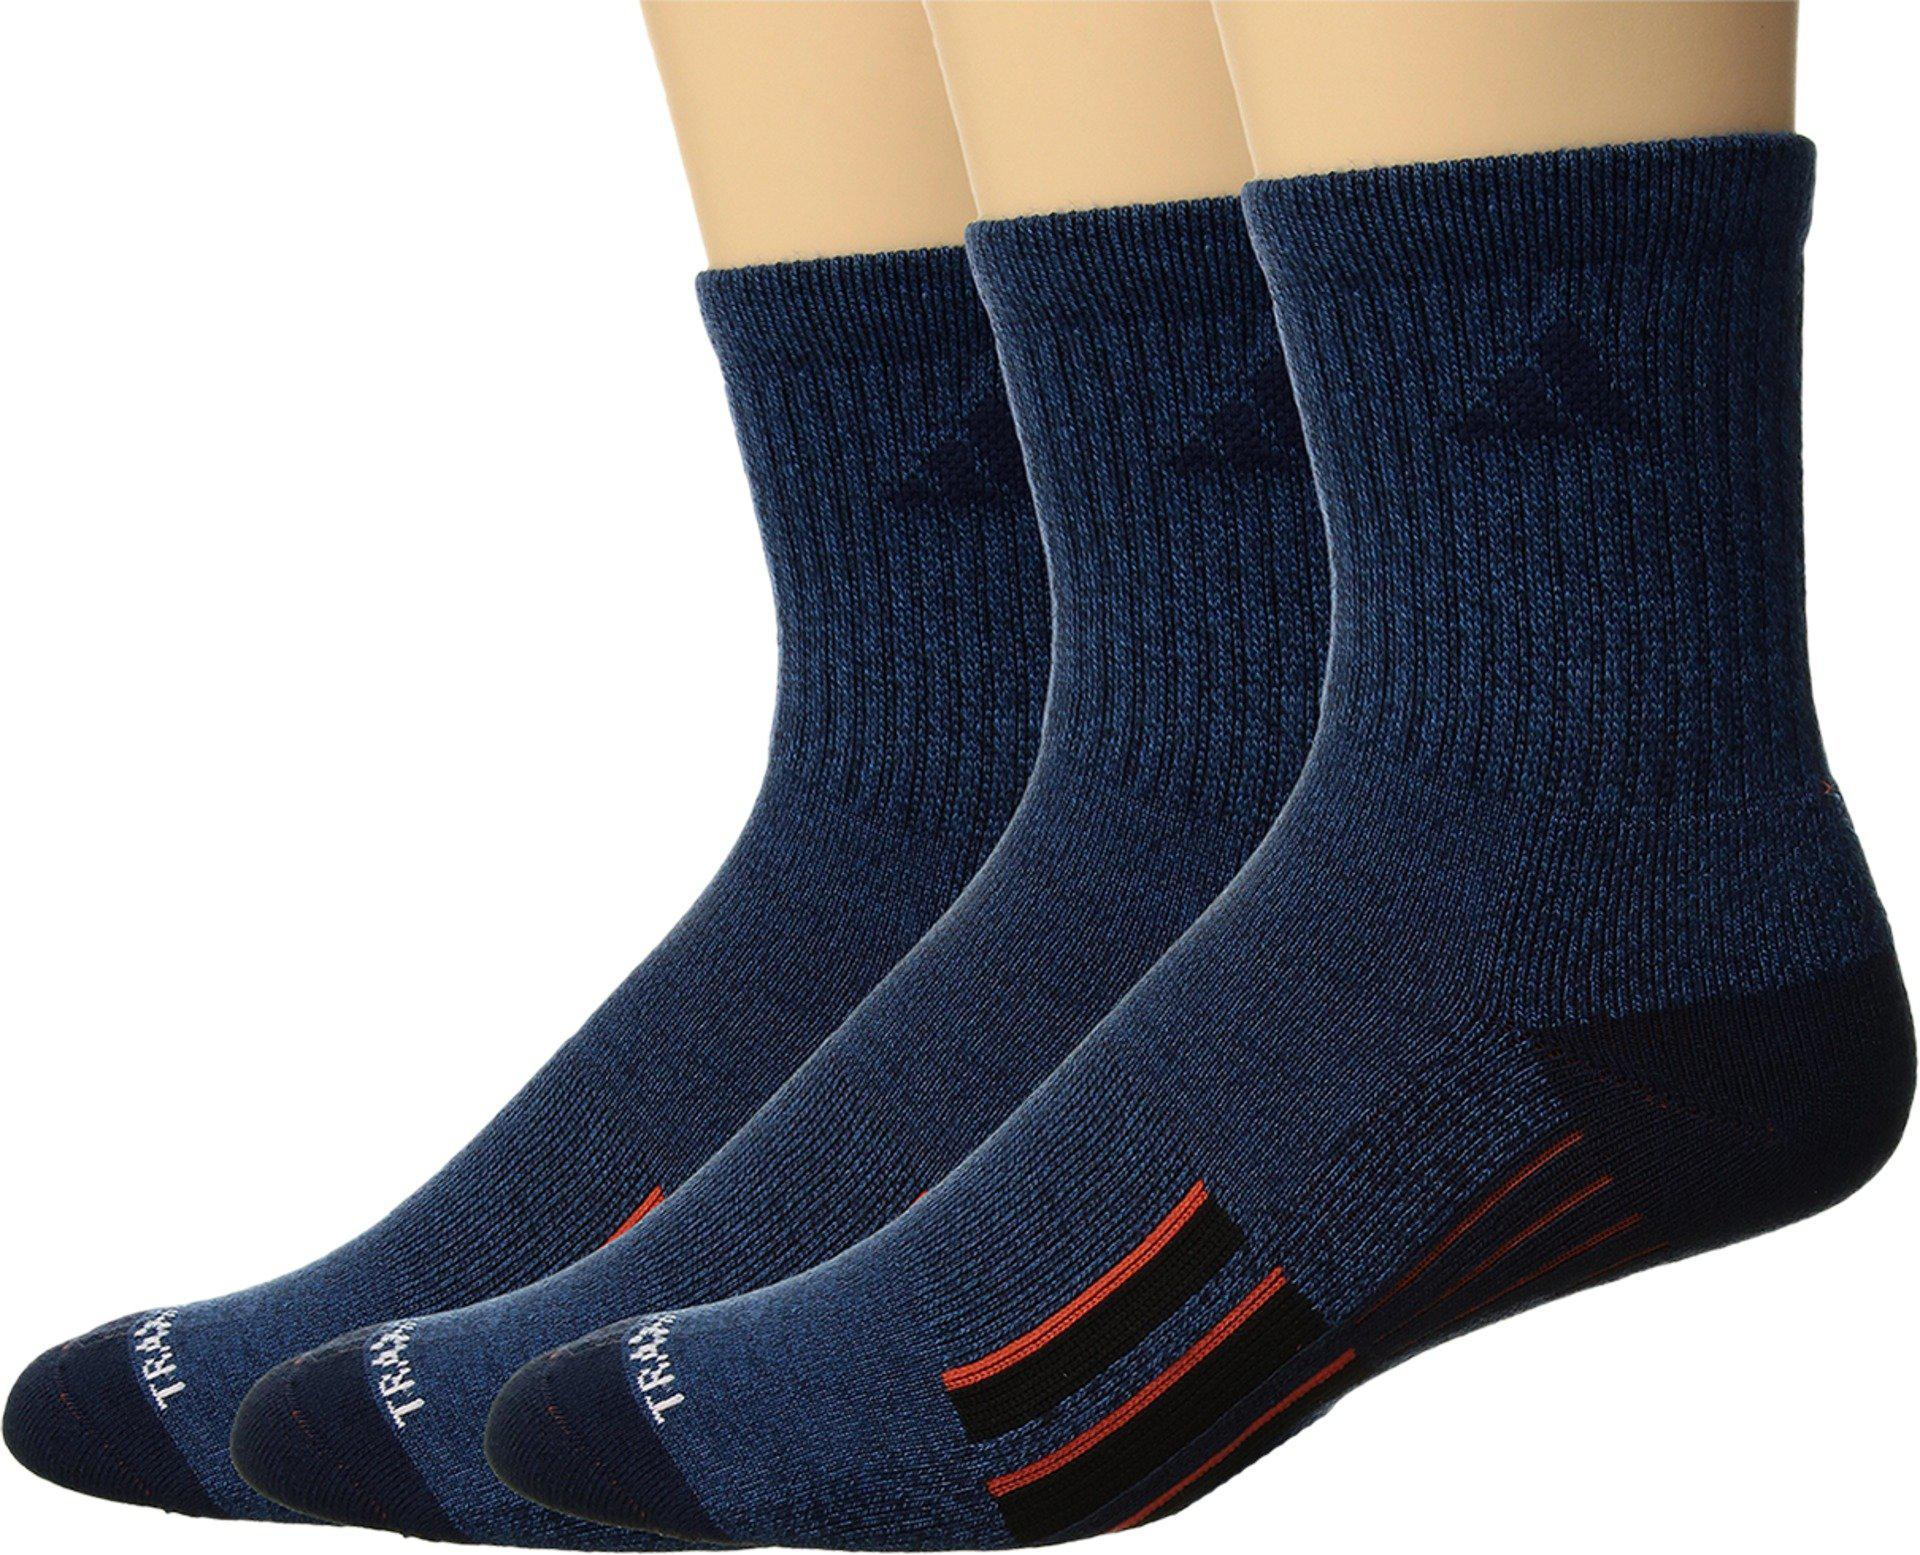 reputable site 9bd1d a669d Lyst - adidas Climalite® X Ii 2-pack Mid-crew Socks in Blue